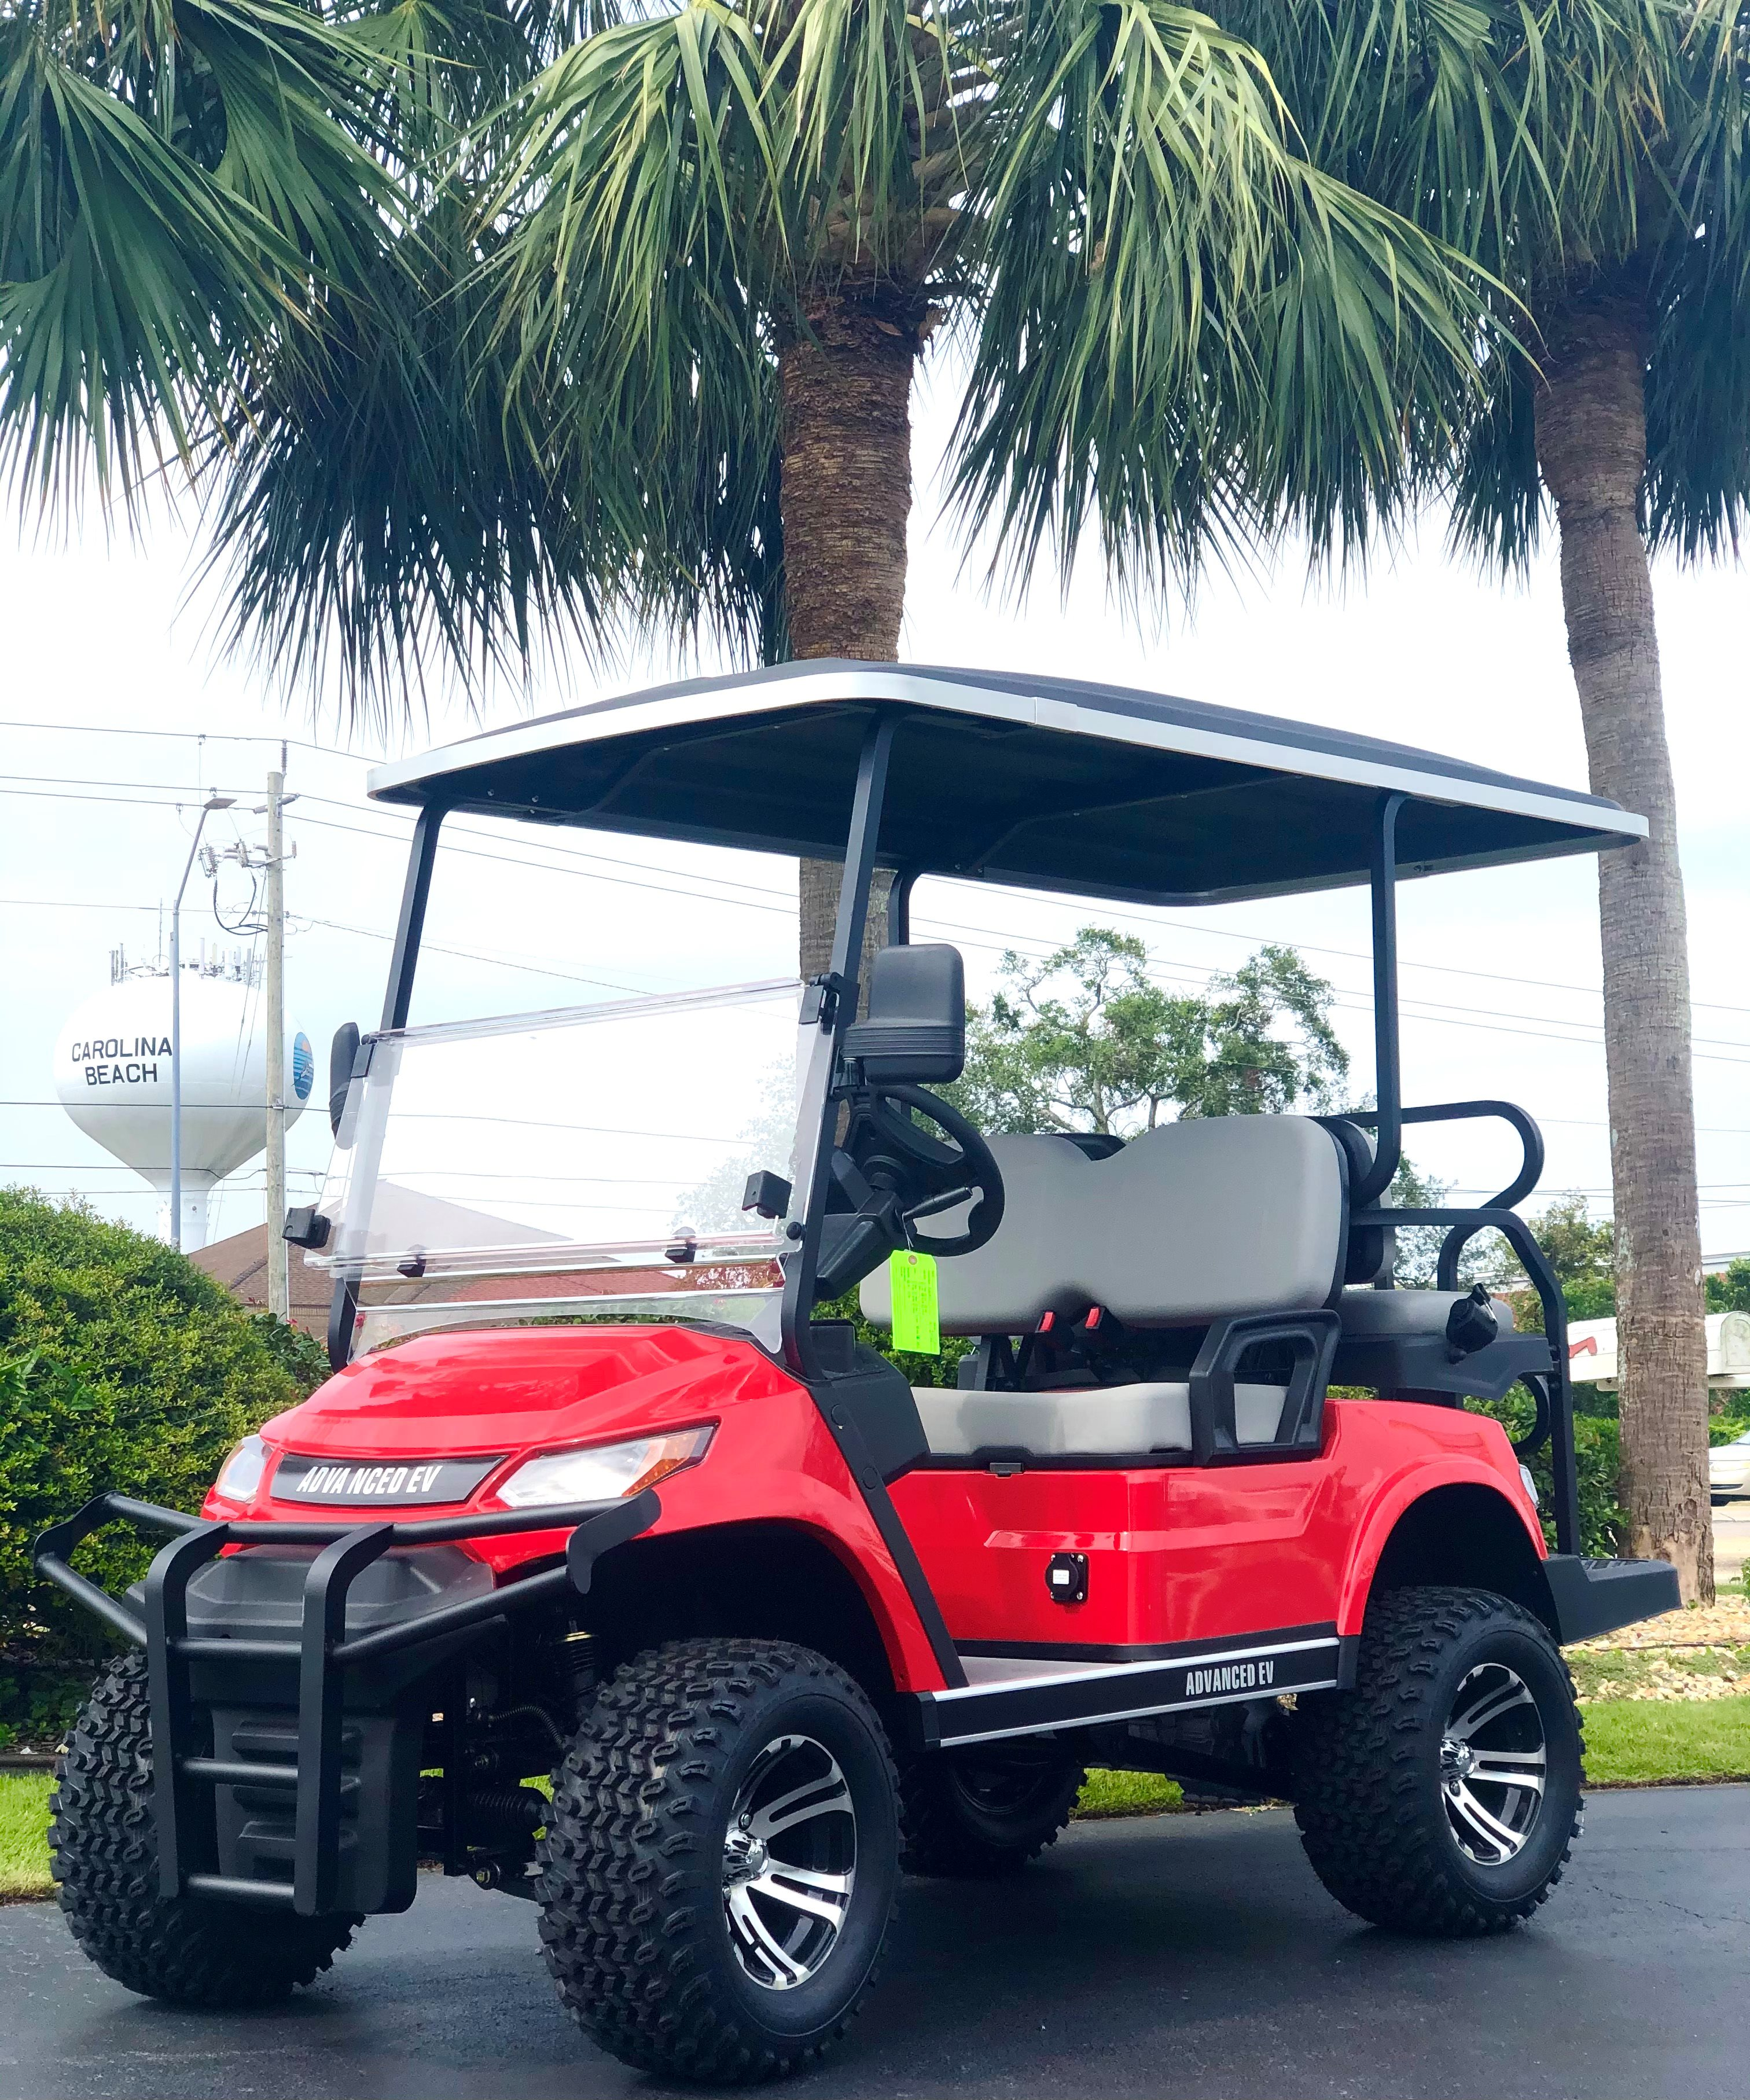 2021 AdvancedEV 4 Passenger Lifted GENERATION 2